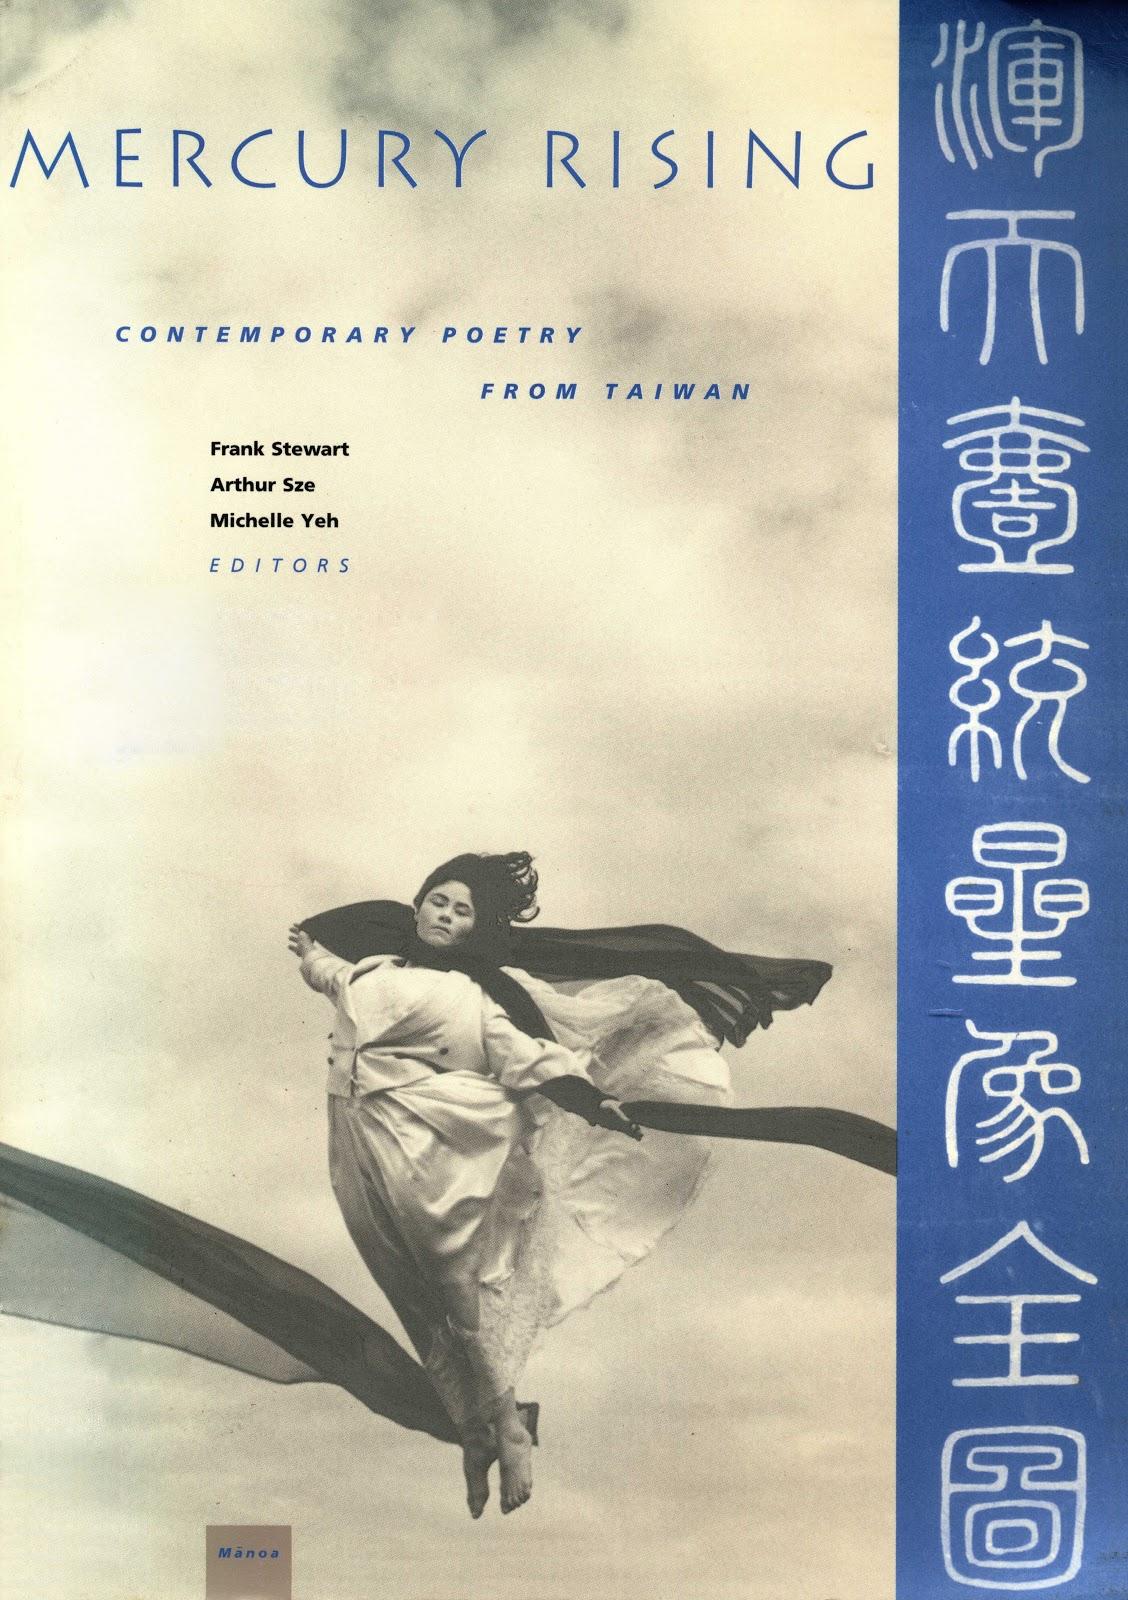 Mercury Rising: Featuring Contemporary Poetry from Taiwan (2003)